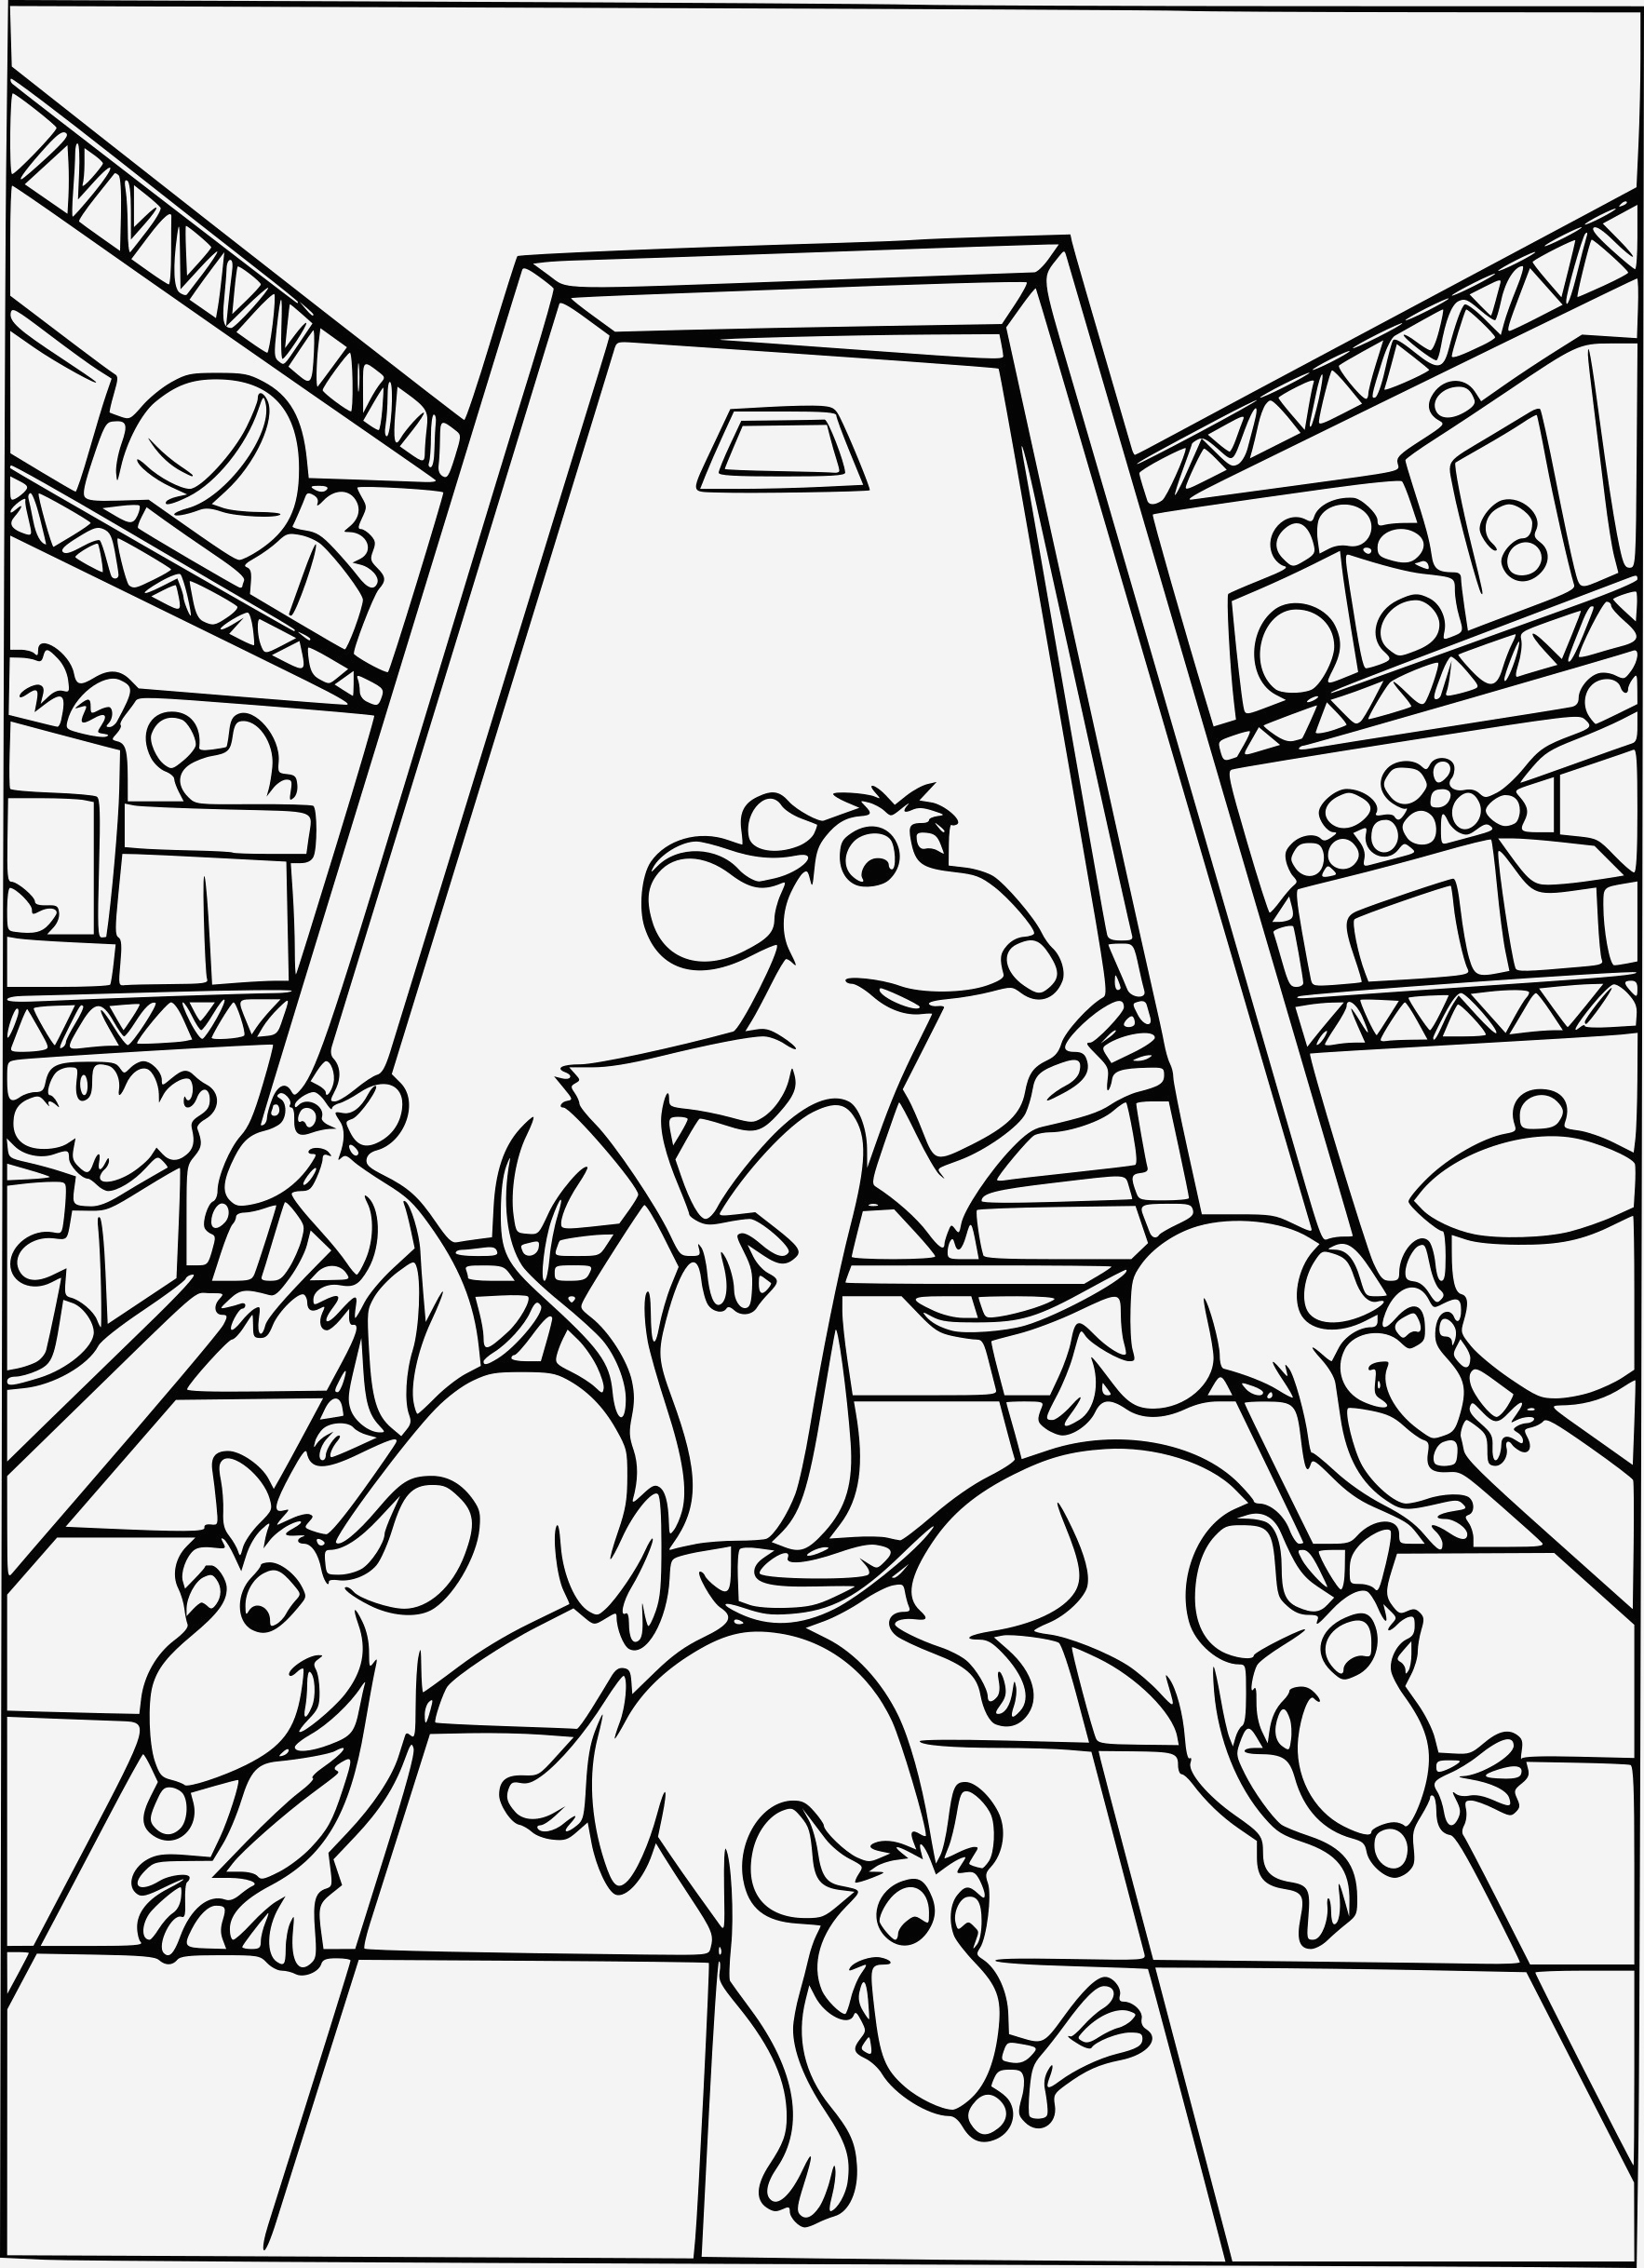 Coloriage Ratatouille Lovely Coloriage Ratatouille Gratuit   Imprimer Of Coloriage Ratatouille